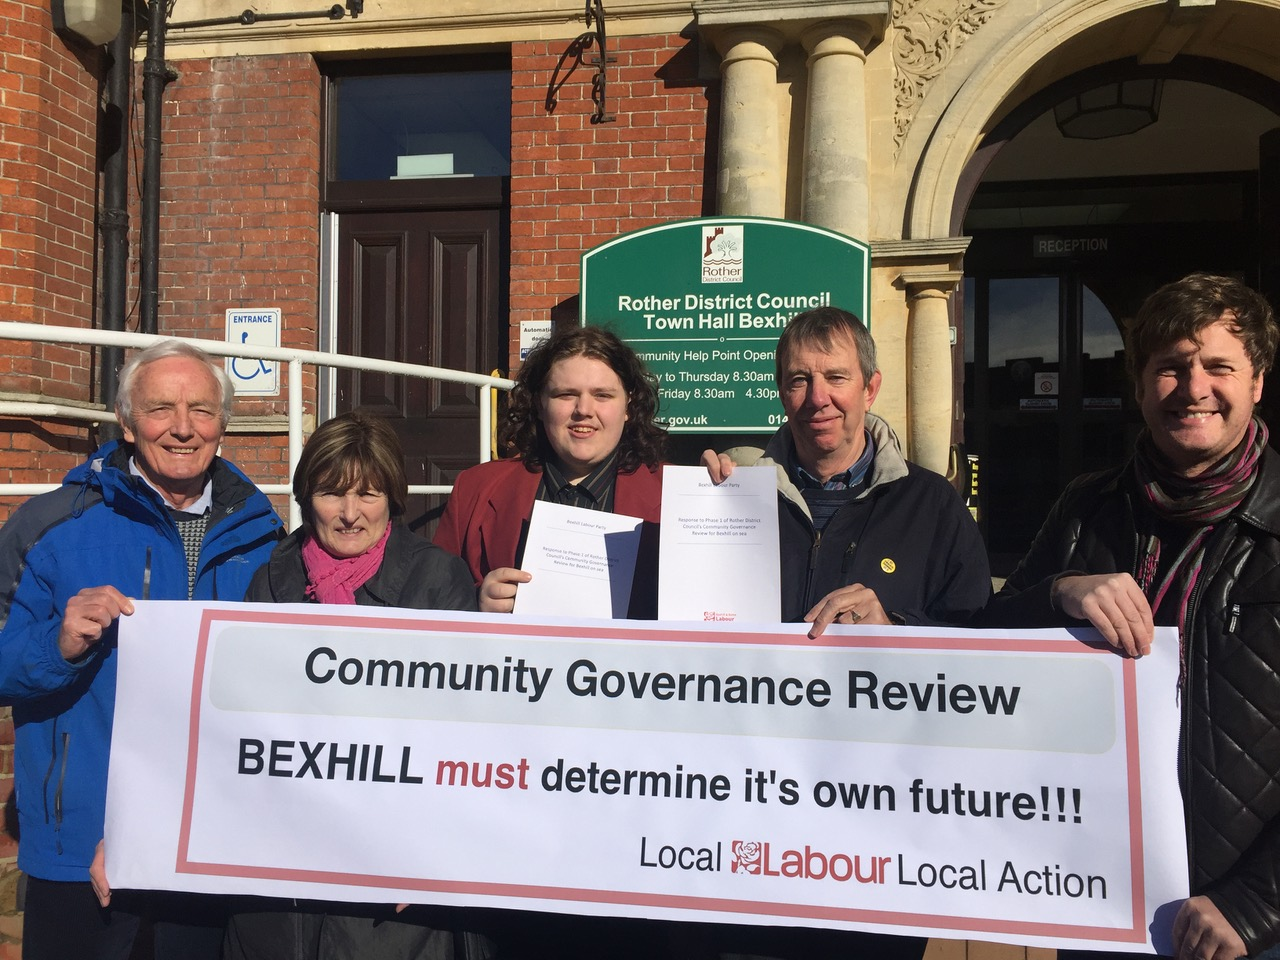 Labour party members supporting the proposed Bexhill town council